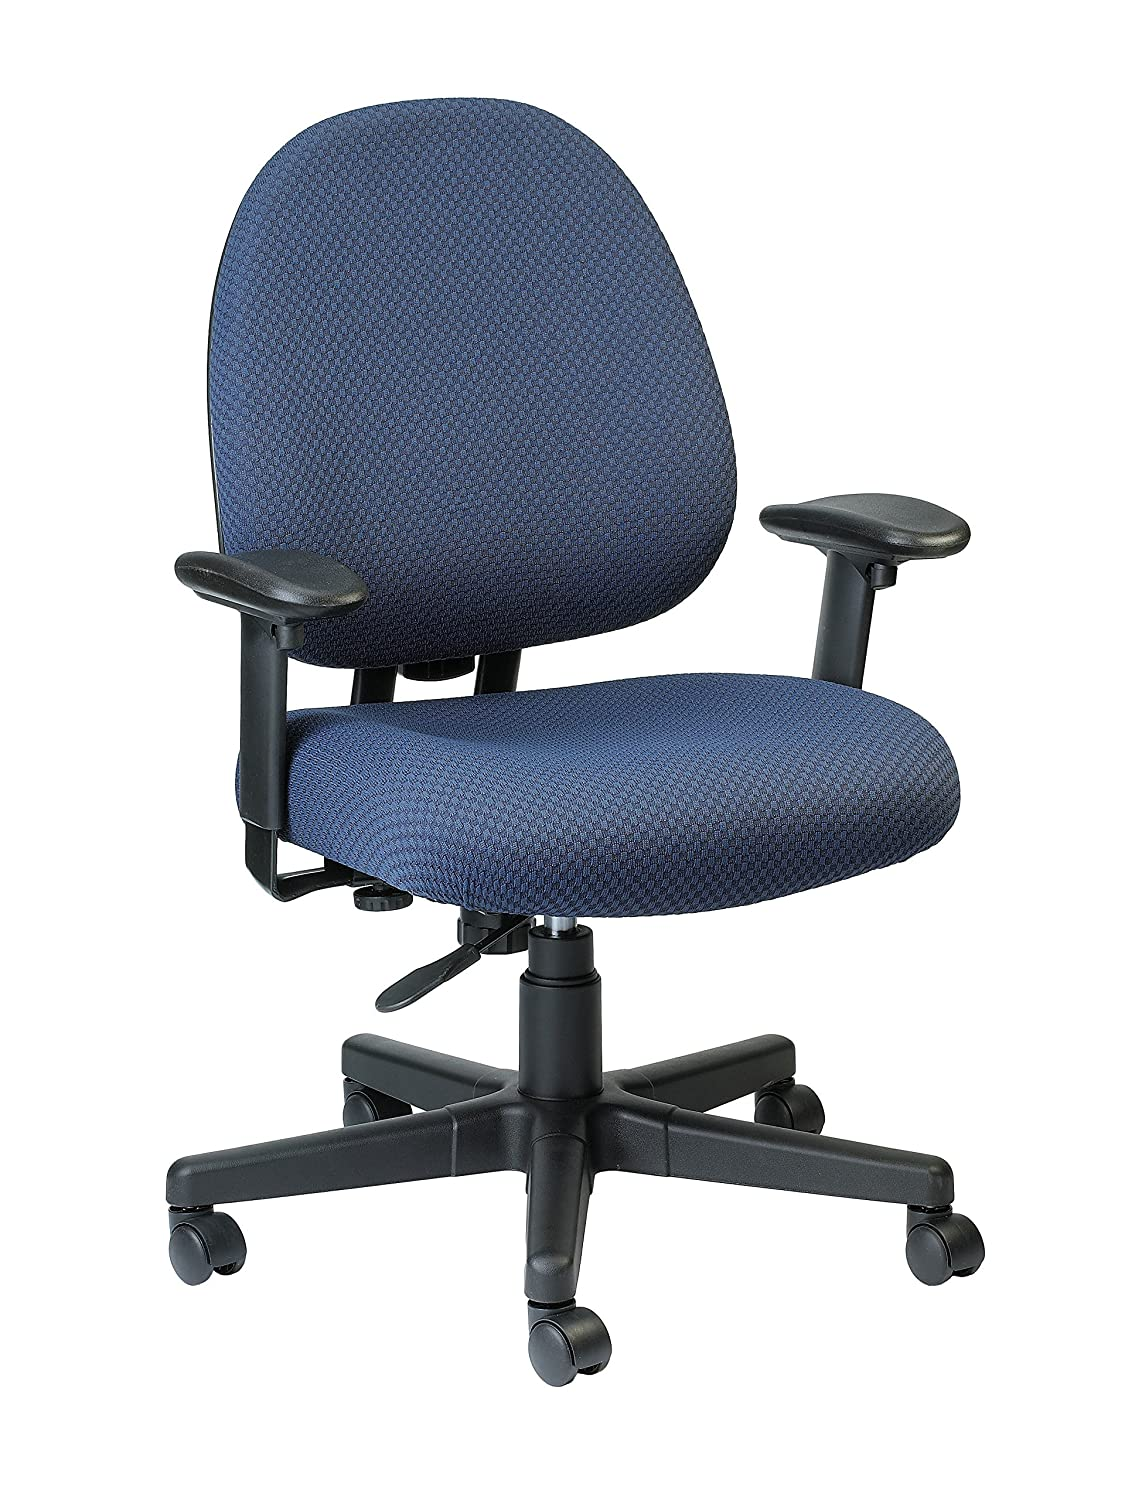 Eurotech Seating Cypher FT2700-NAVY Ratchet Back Swivel Chair Navy